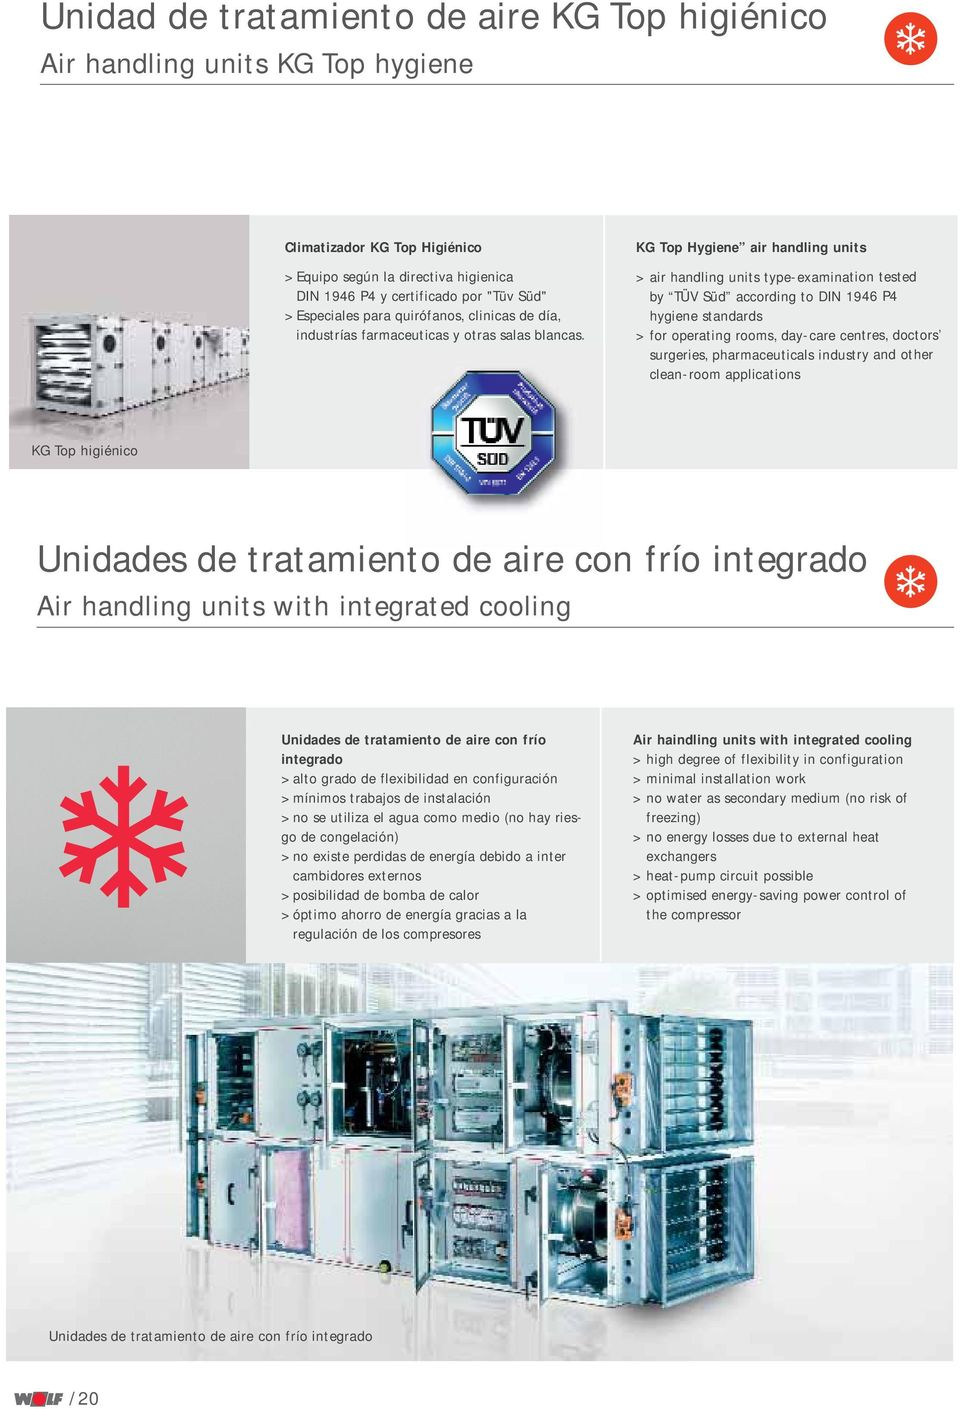 KG Top Hygiene air handling units > air handling units type-examination tested by TÜV Süd according to DIN 1946 P4 hygiene standards > for operating rooms, day-care centres, doctors surgeries,